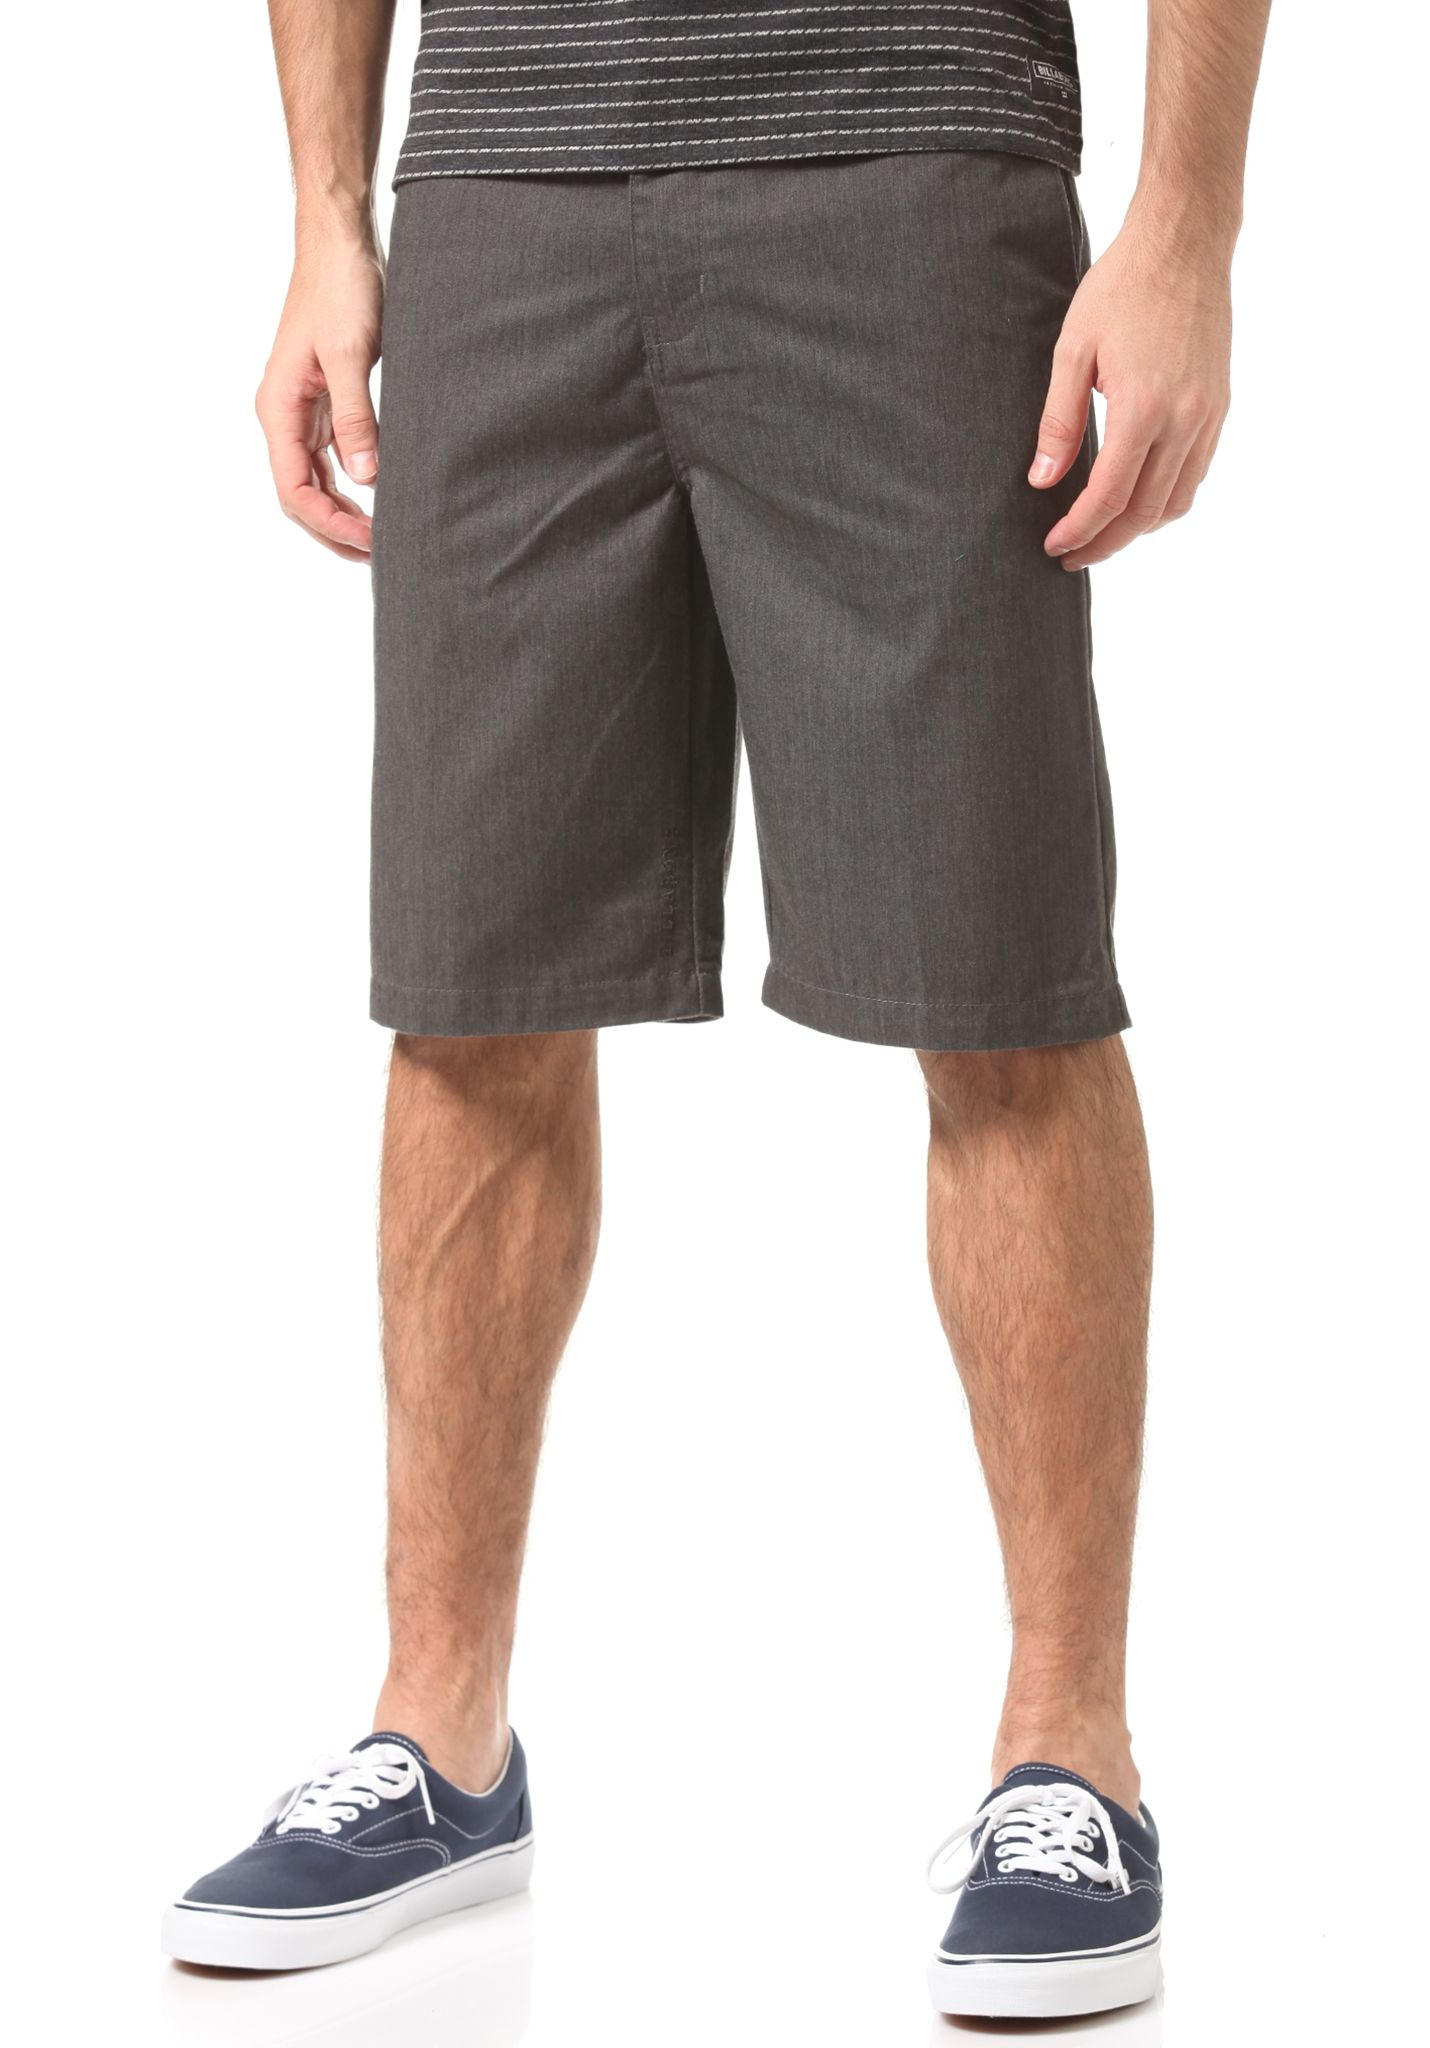 BILLABONG Carter - Chino Shorts for Men - Grey - Planet Sports